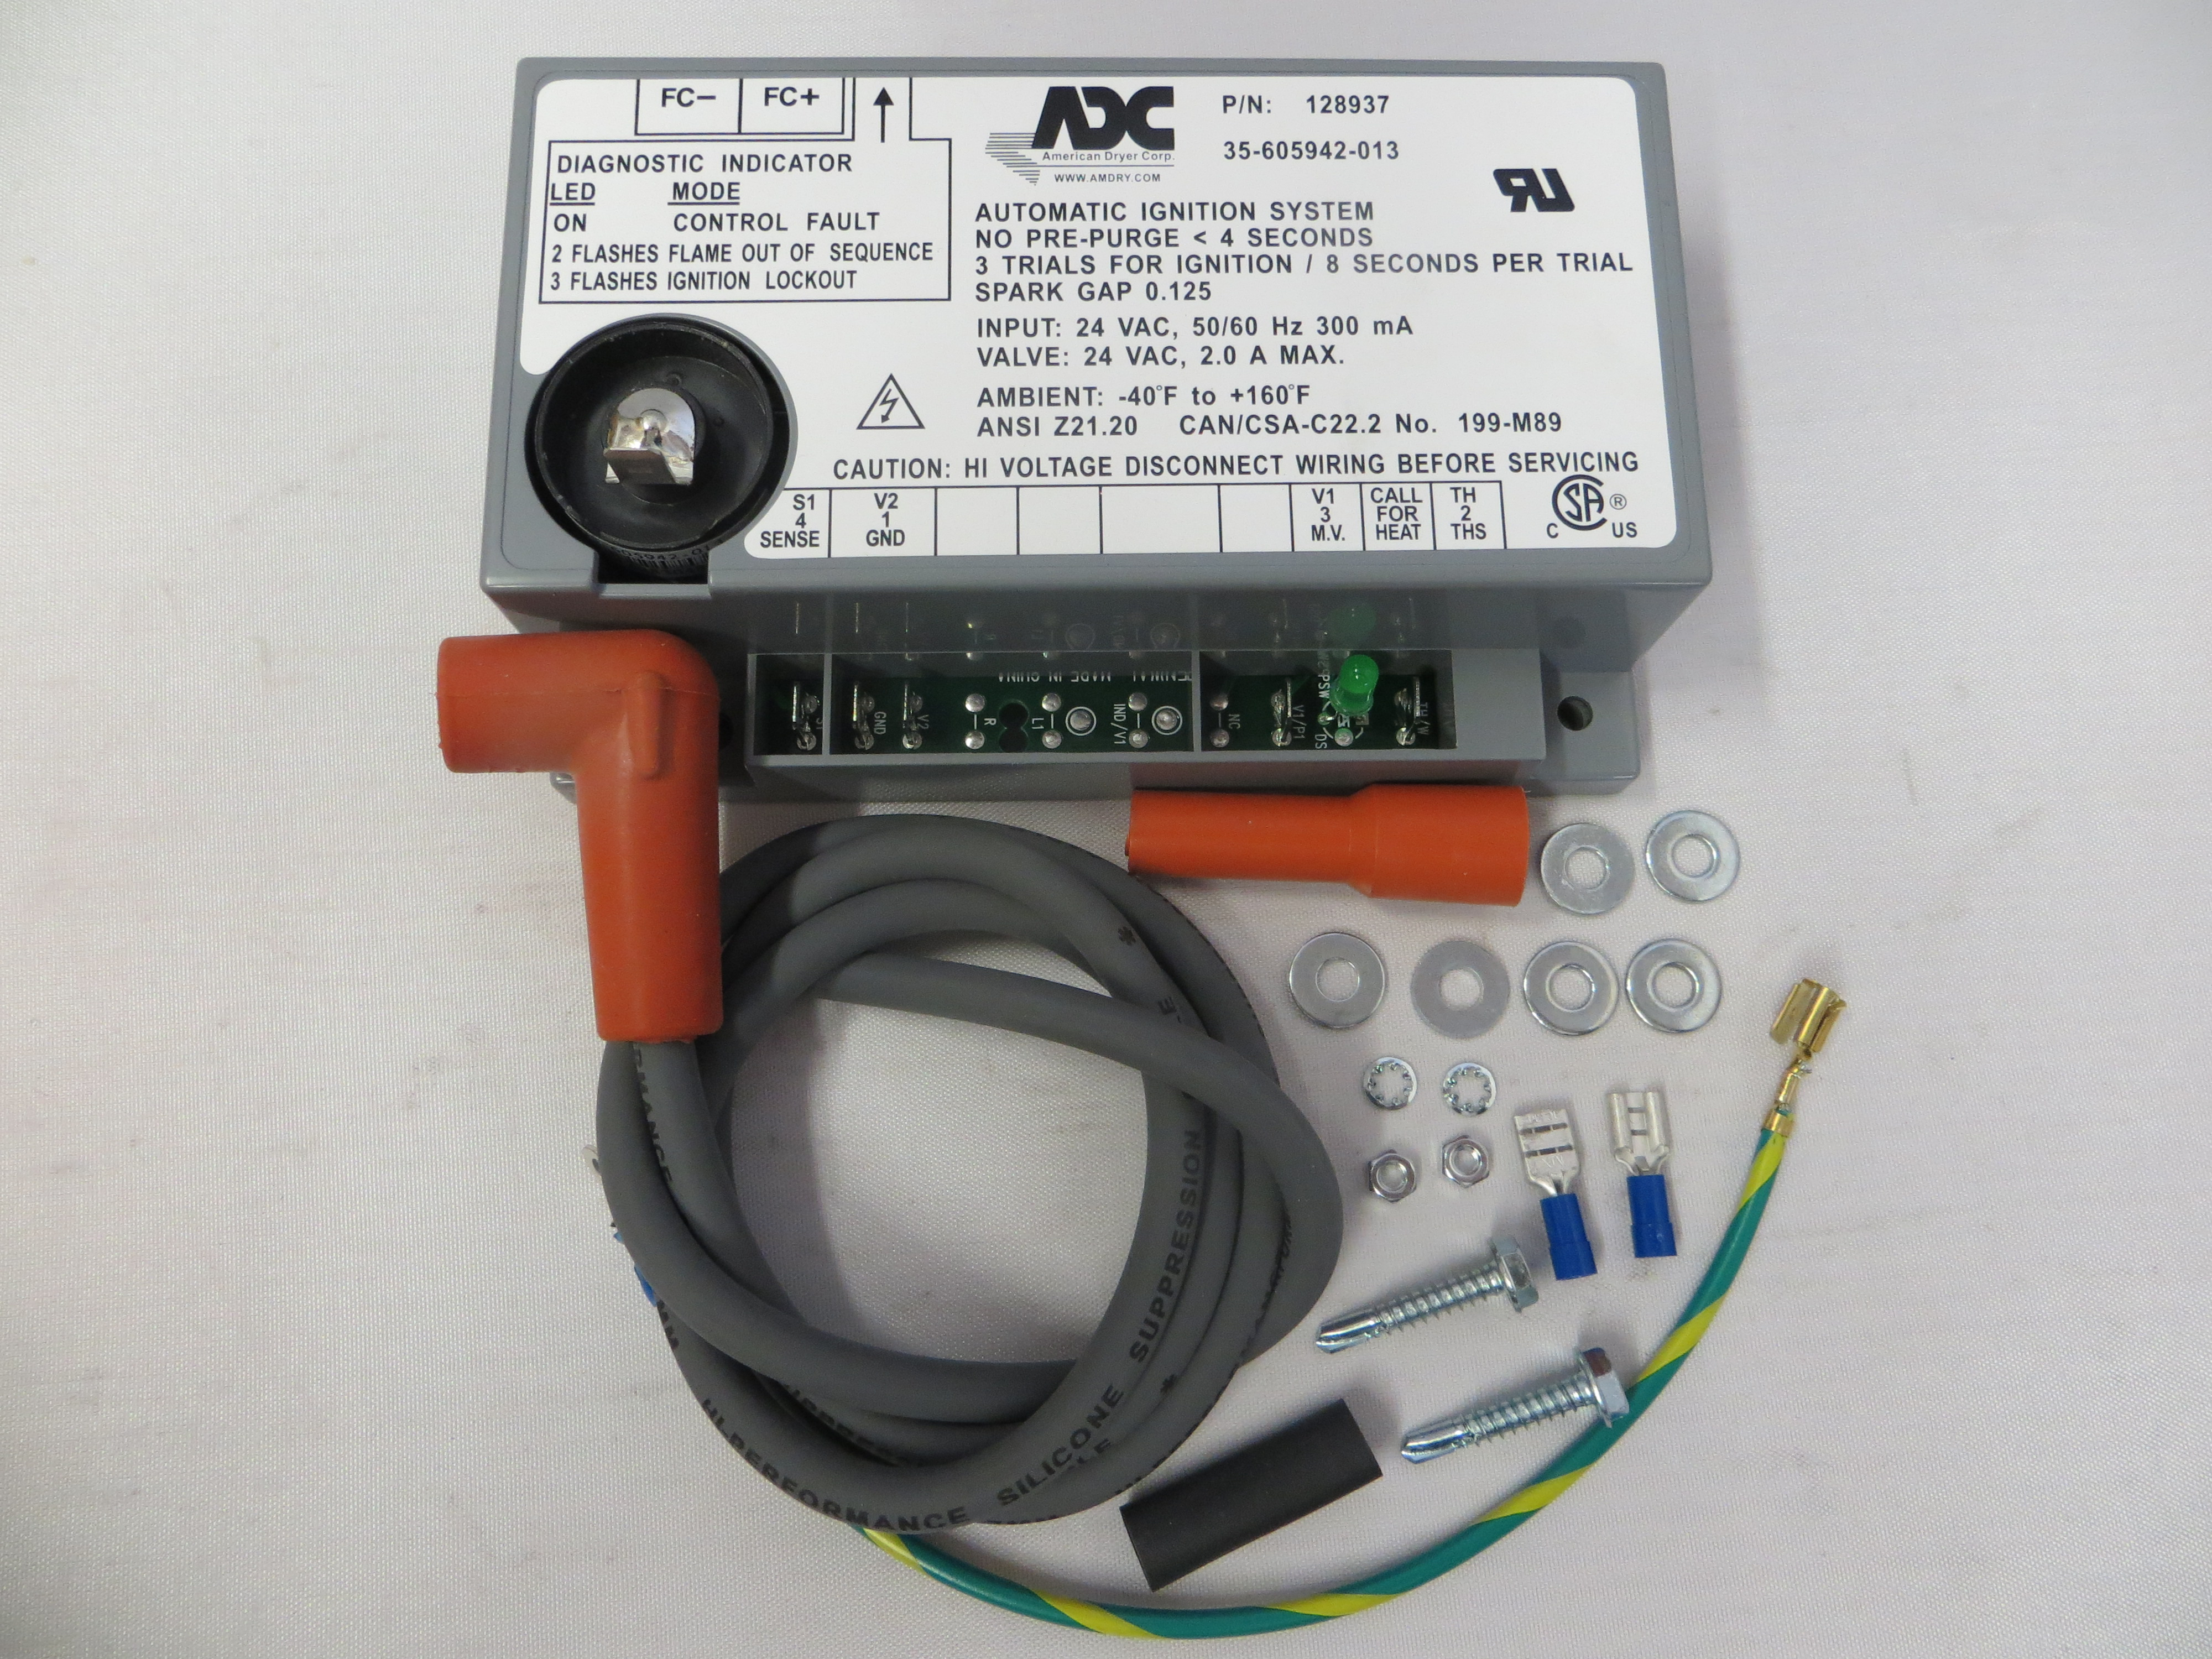 WFR883849 - ADC Ignition Control